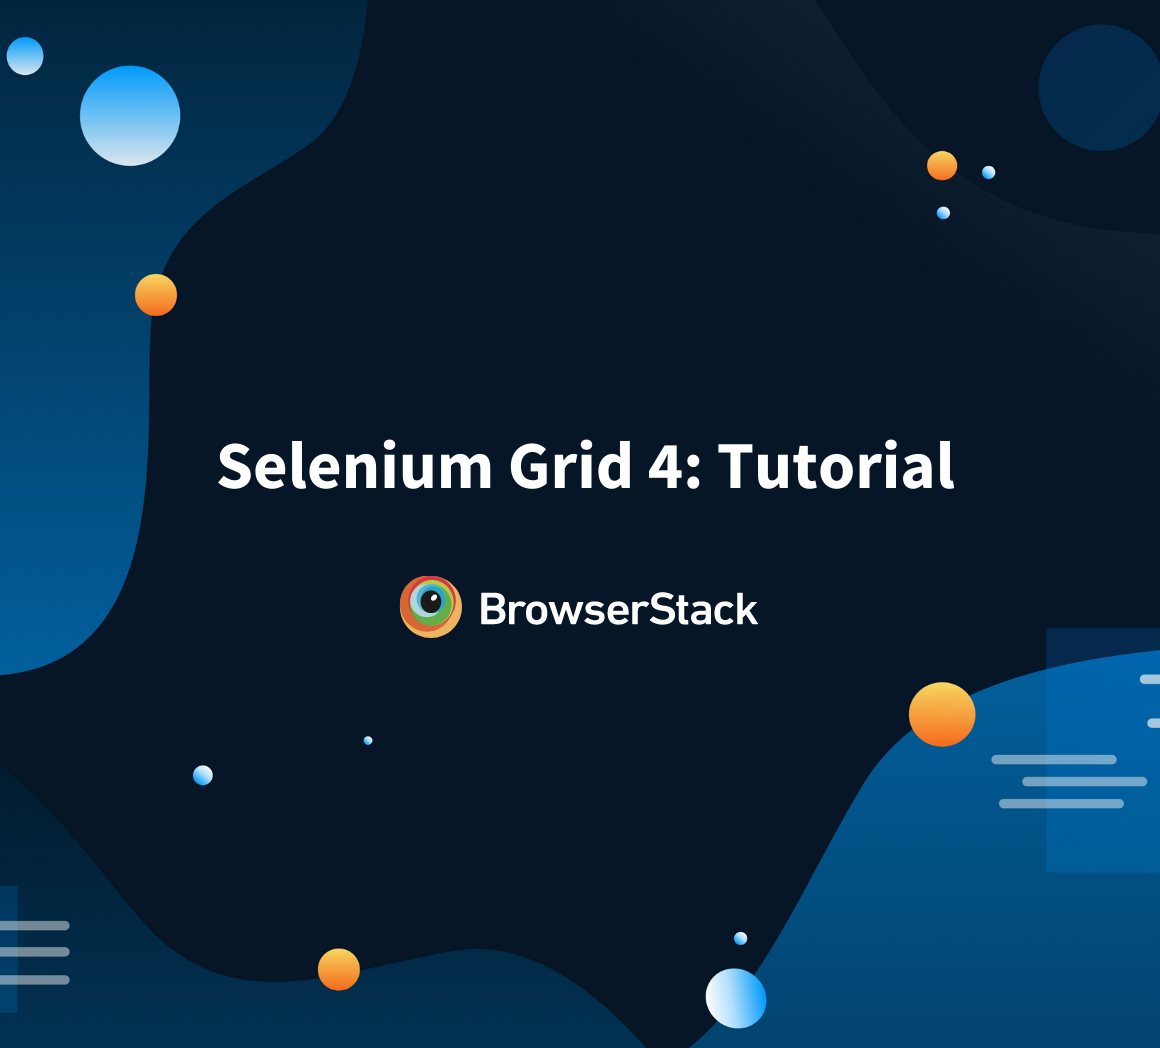 How to install and configure Selenium Grid 4